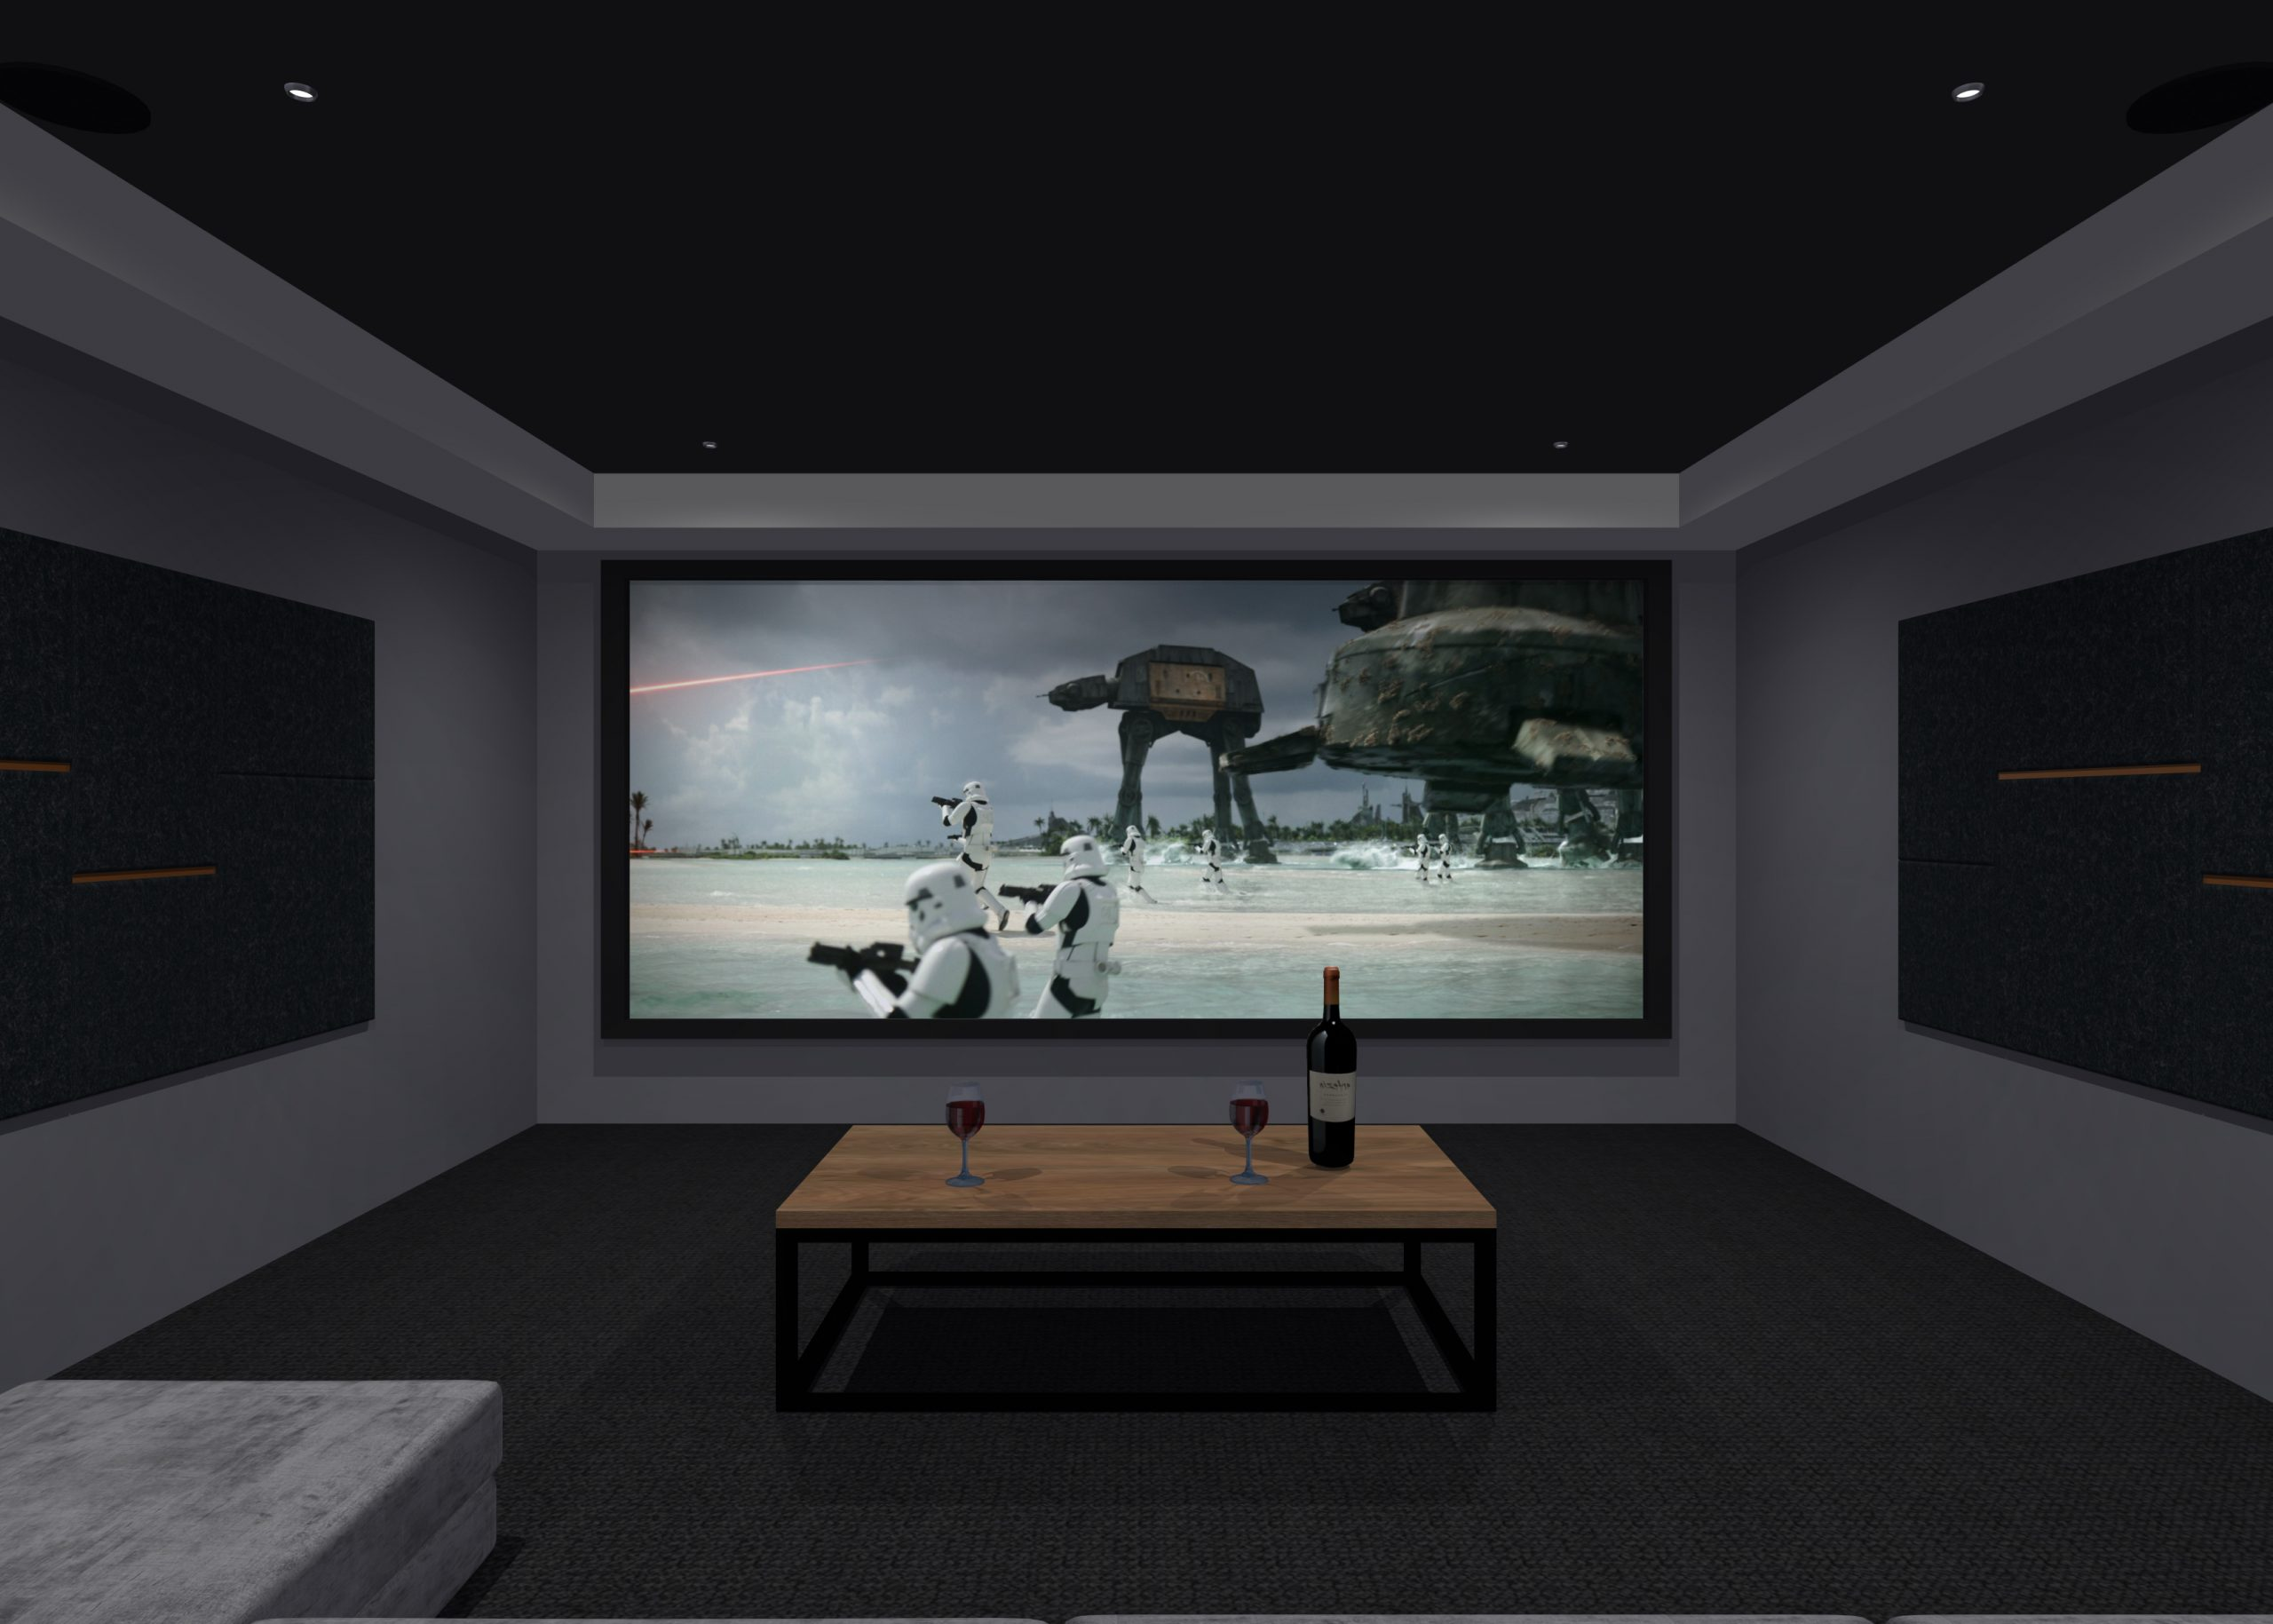 Garage conversion home cinema with acoustic room treatment